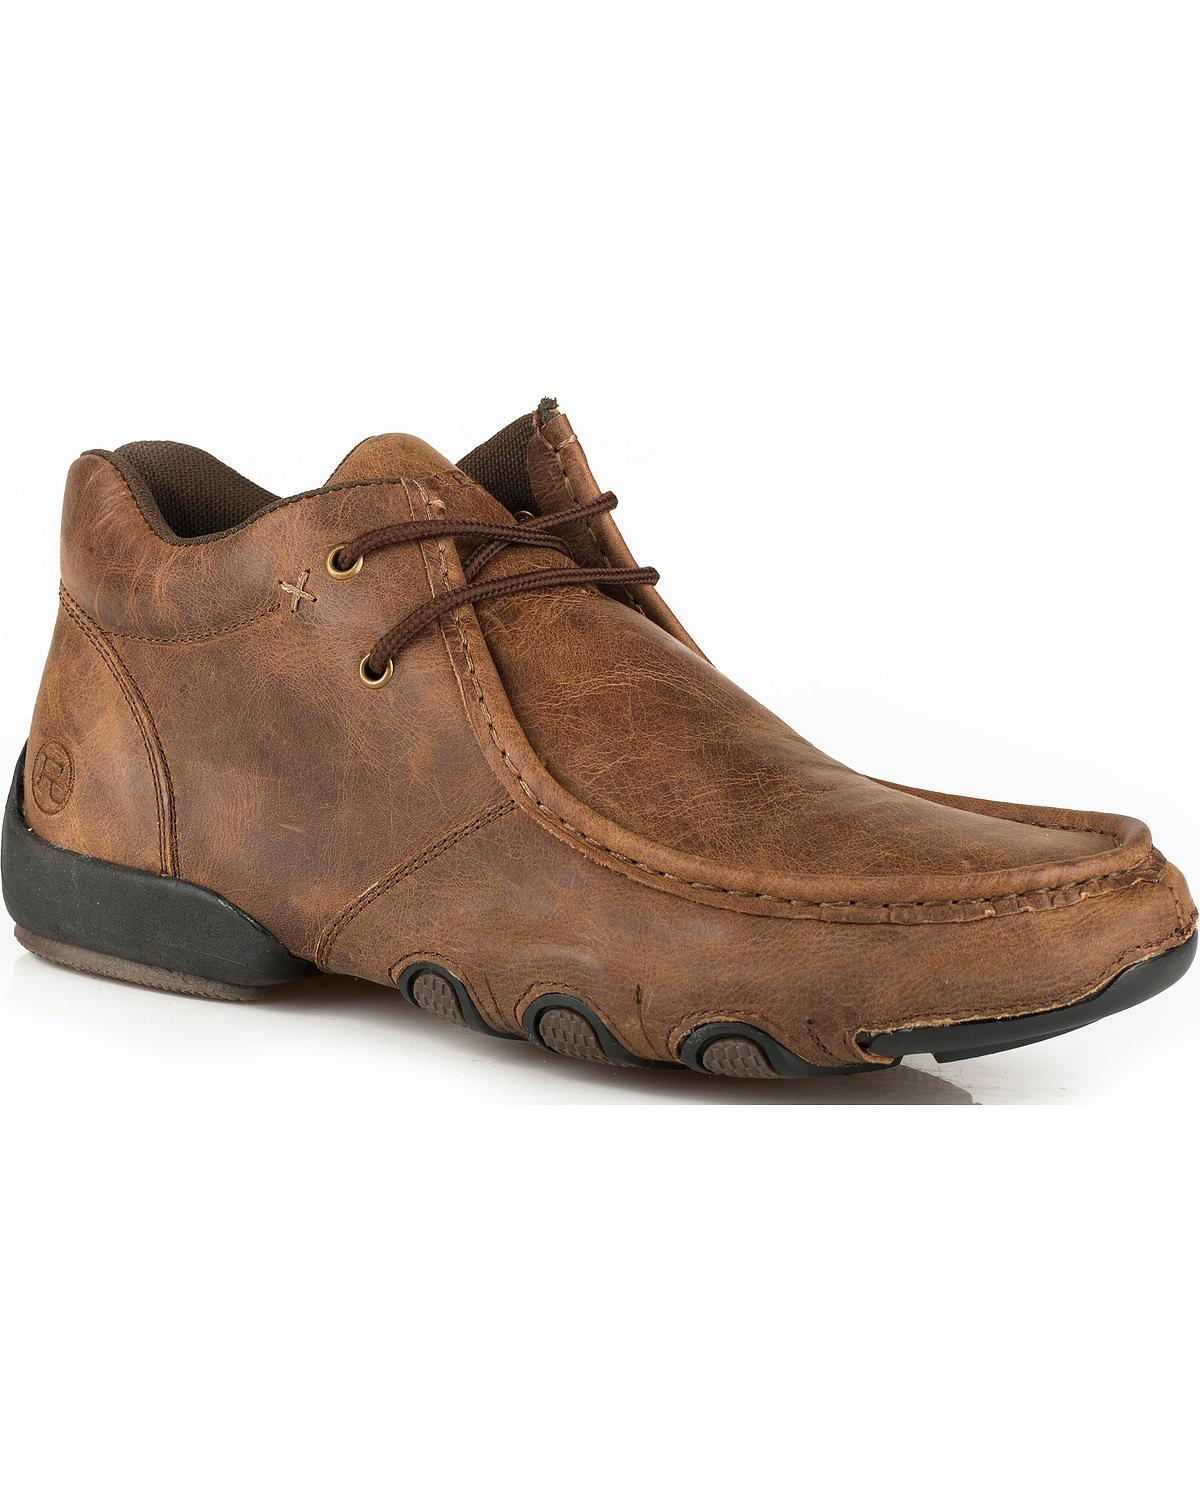 Roper Men's Leather 2 Eye Lace Up Driving Moc Chukka Shoes - 09-020-1770-0759 Br